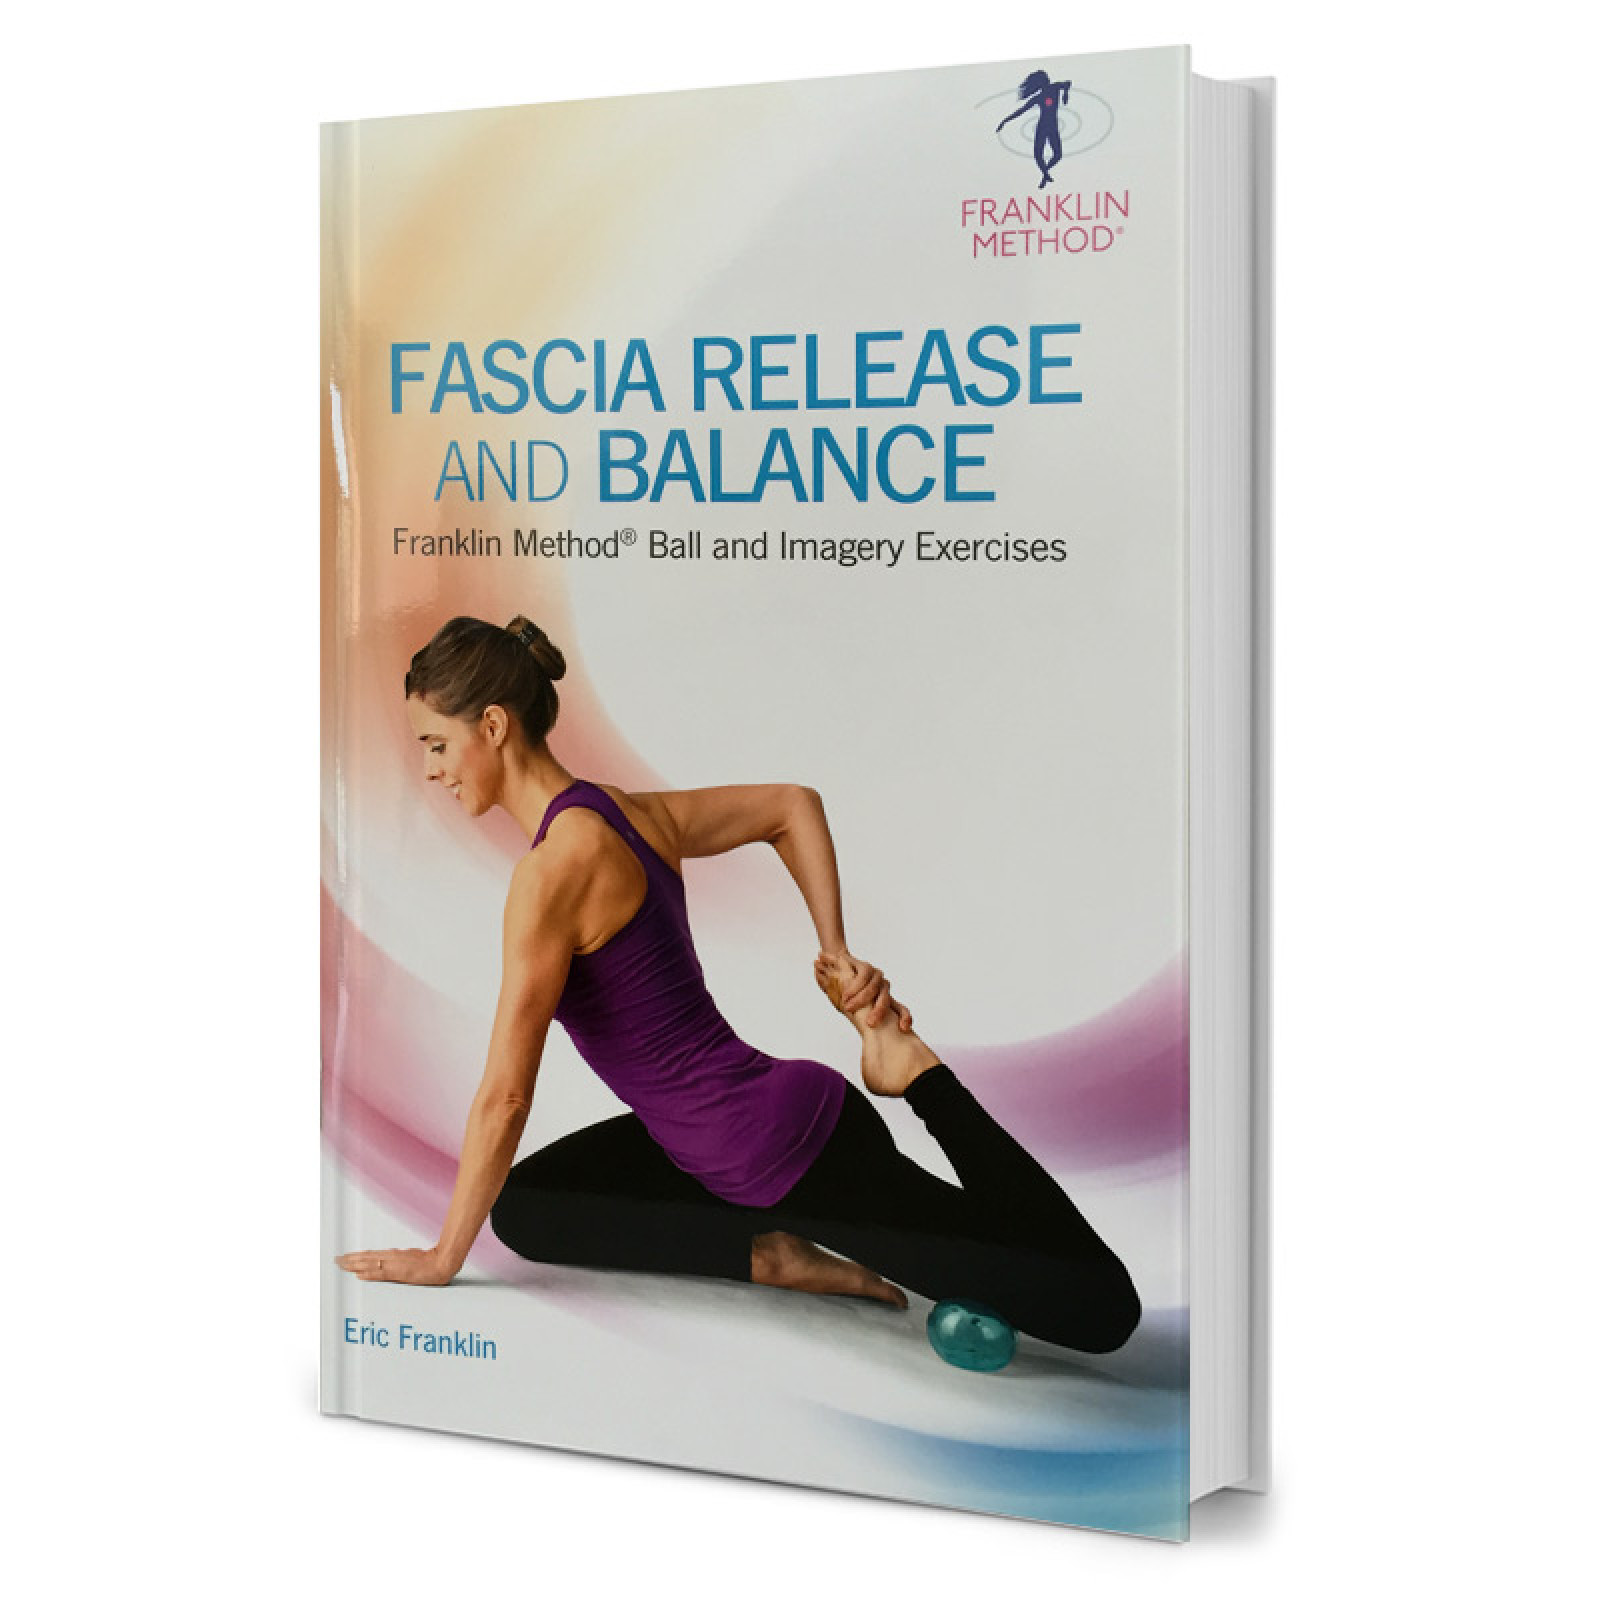 Fascia Release and Balance w. Franklin Method